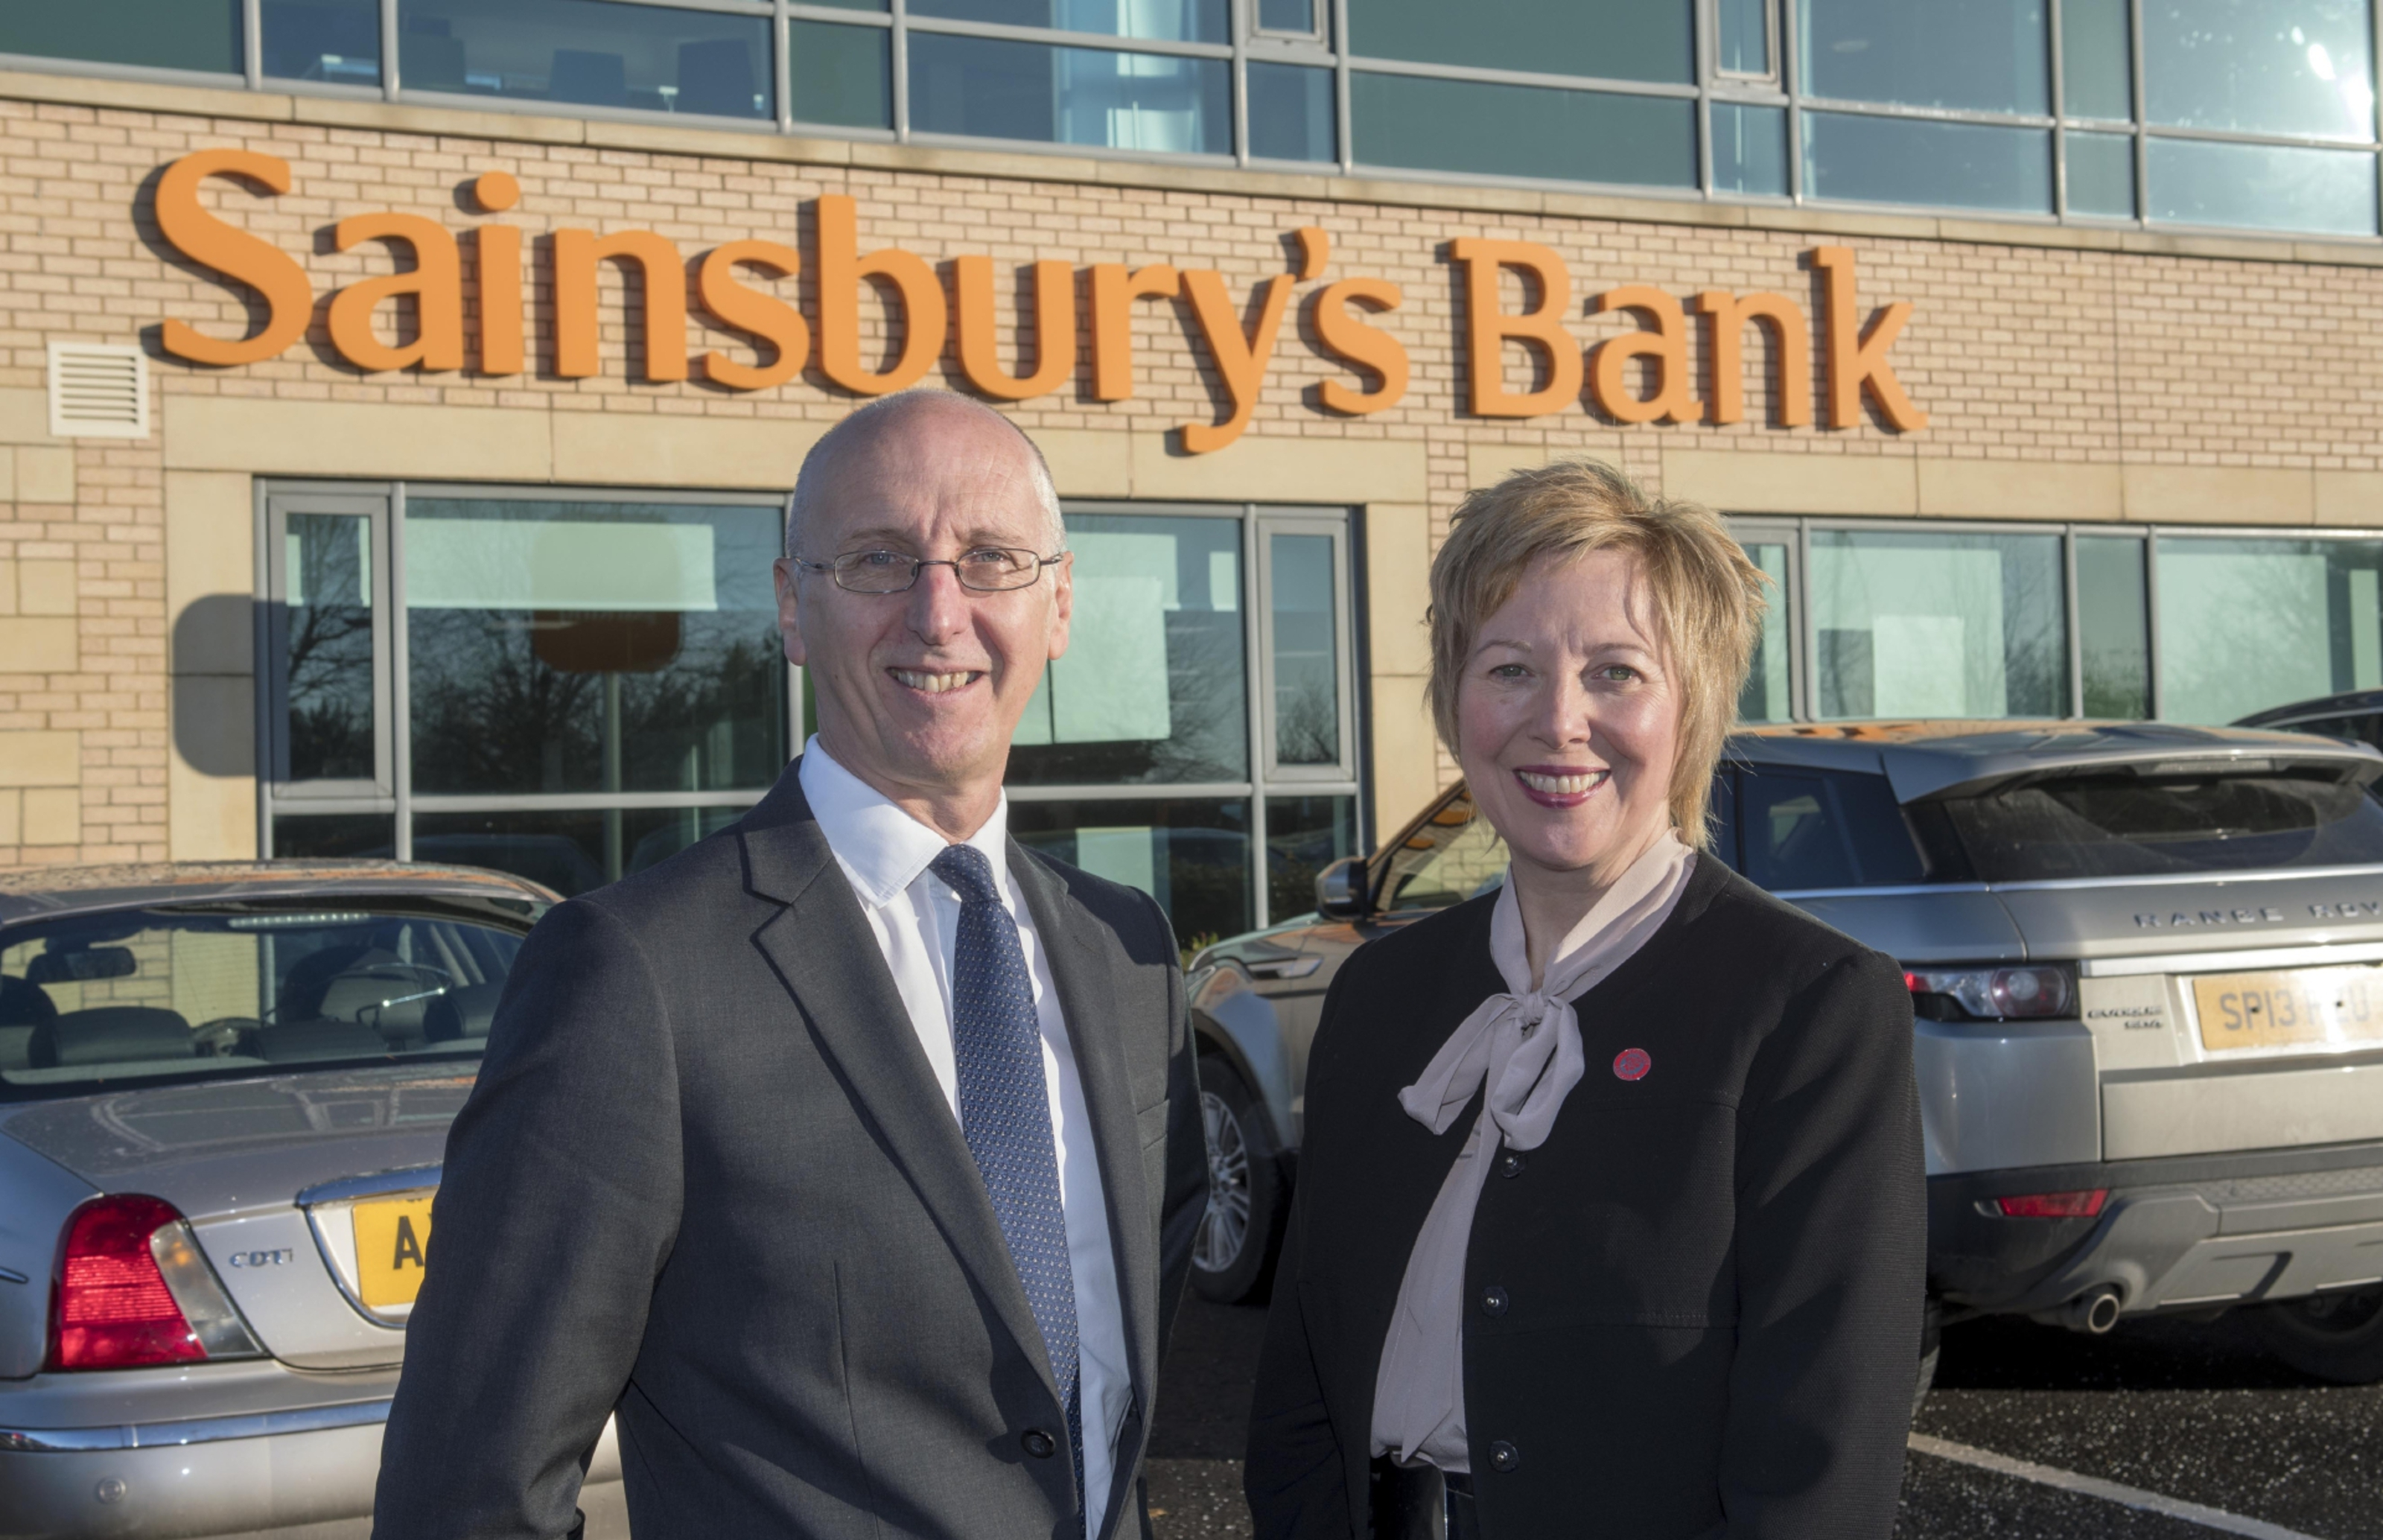 Sainsbury's Bank chief executive Peter Griffiths and Councillor Lesley Laird at the new customer contact centre in Rosyth.